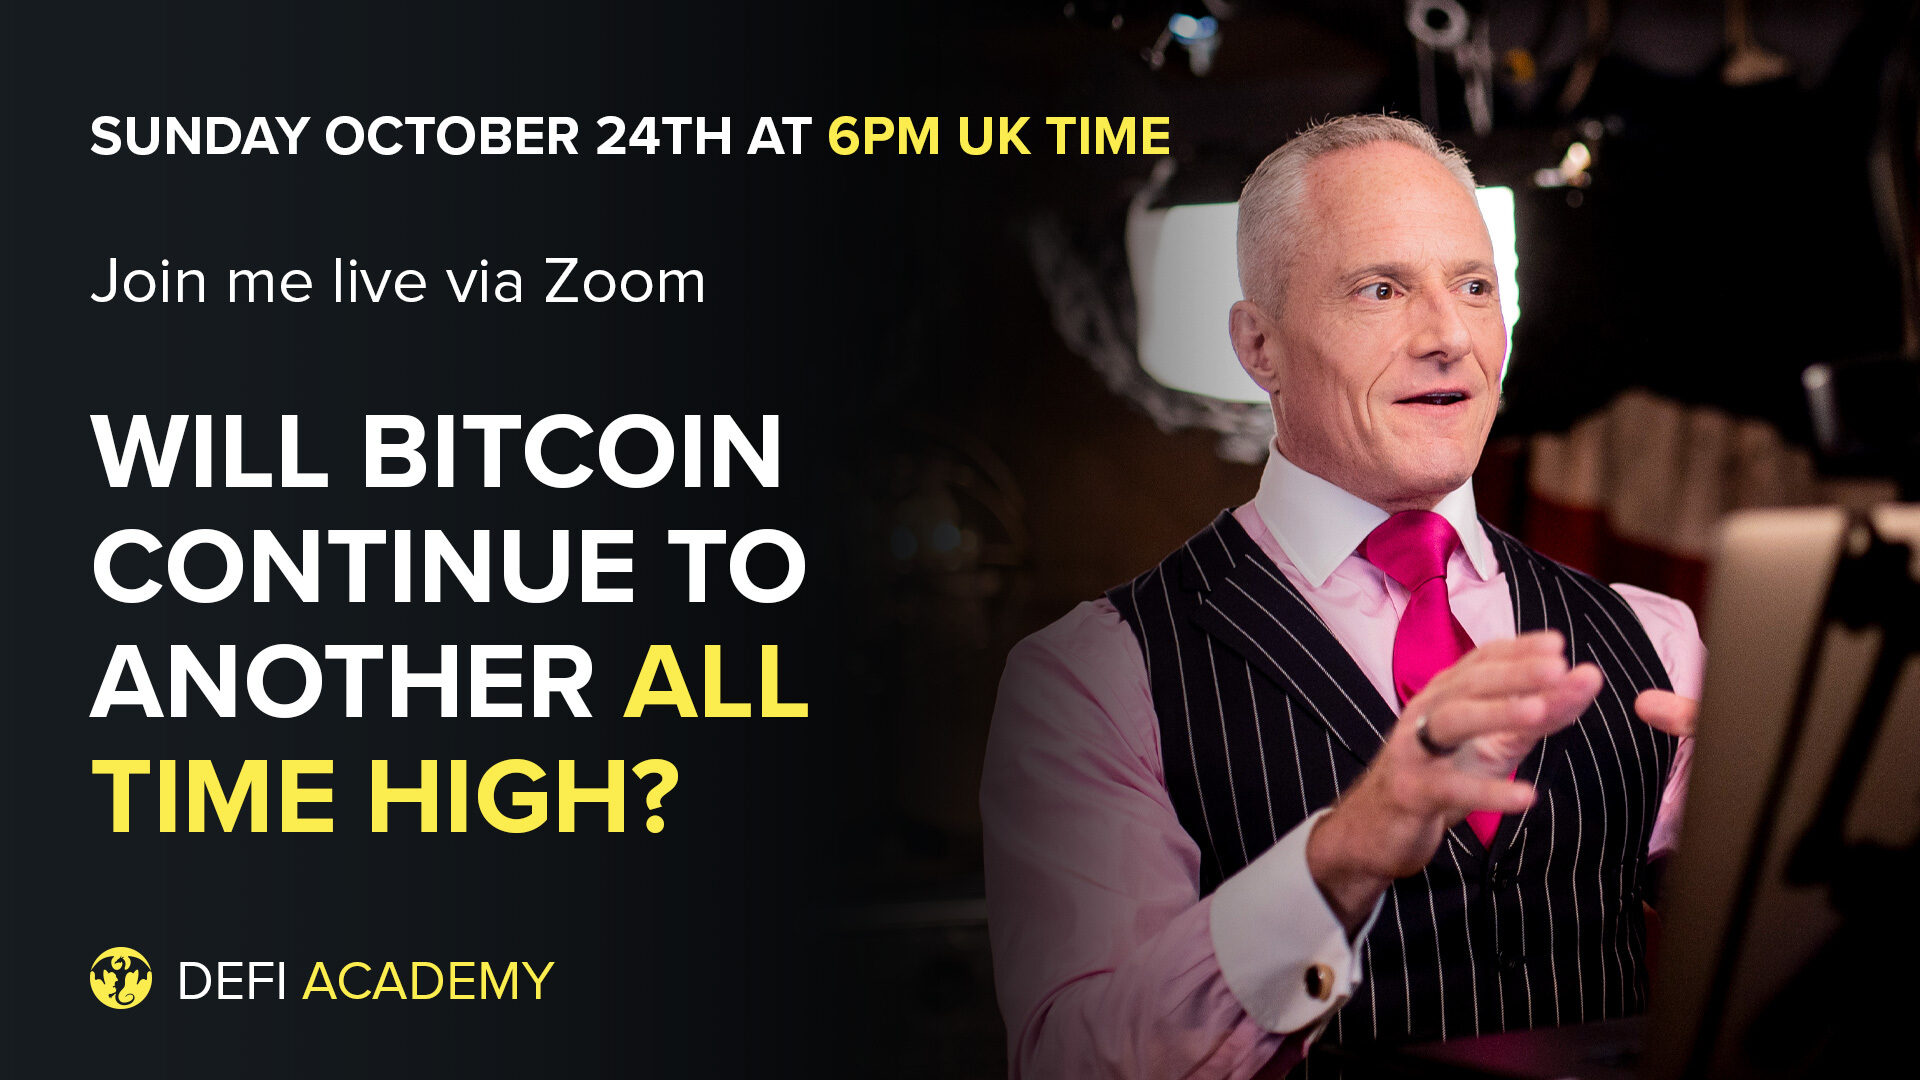 Will Bitcoin Continue To Another All Time High? Going to $80,000 or Back to $50,000